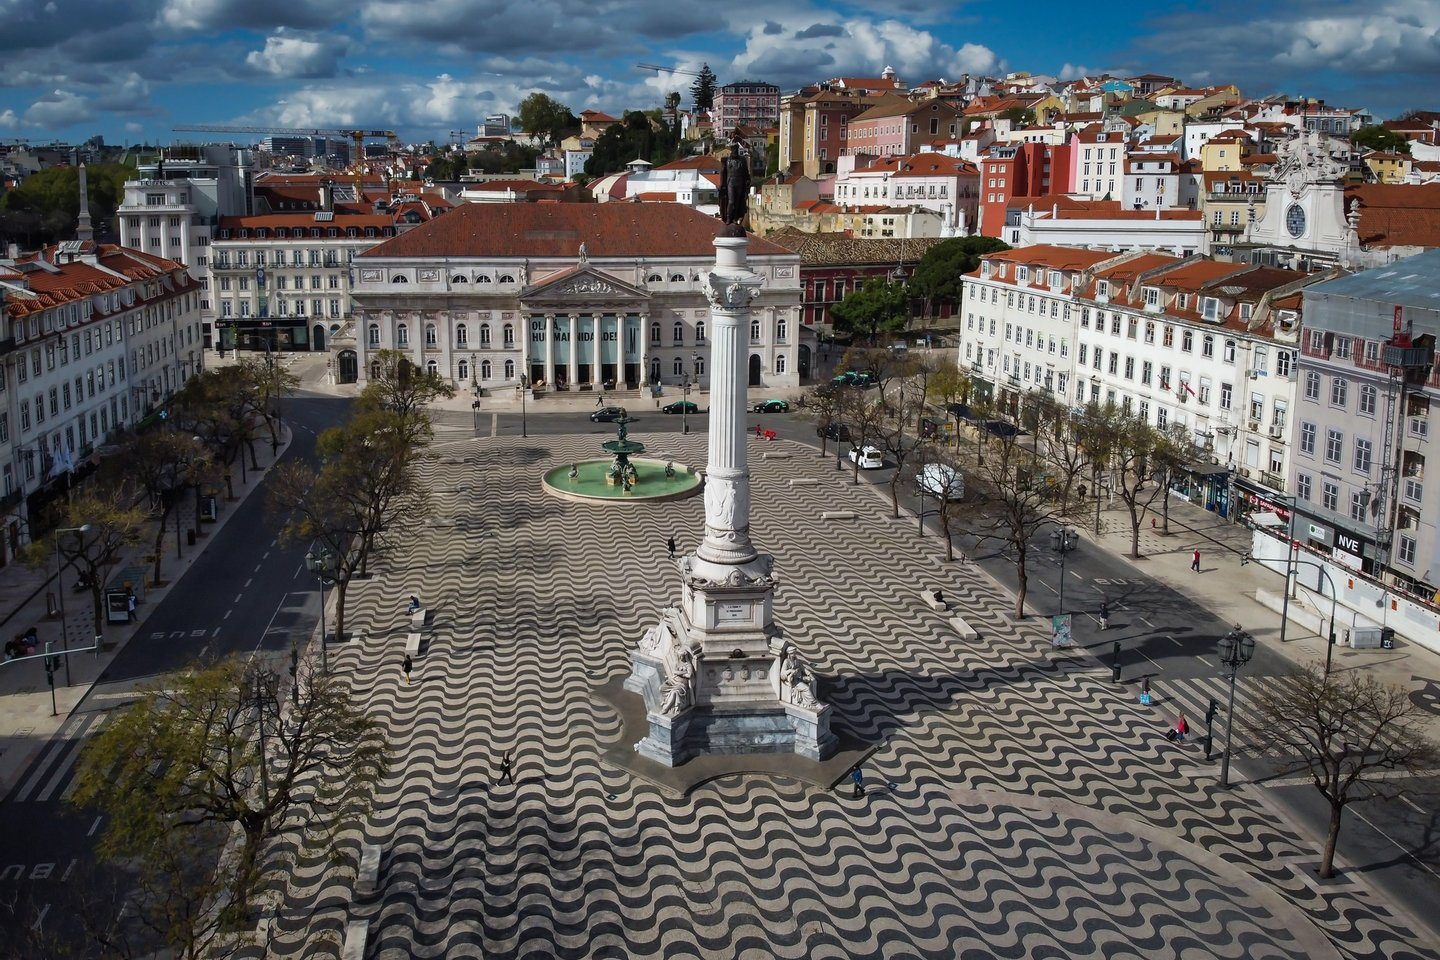 epa08319946 Aerial view of the Rossio square in Lisbon, Portugal, 24 March 2020. To date in Portugal, the coronavirus COVID-19 is responsible for 33 deaths and 2,362 confirmed infections, according to the balance made by the Directorate General of Health. Portugal is in a state of emergency since midnight on 19 March and until 23:59 on 02 April. EPA/ANTONIO COTRIM